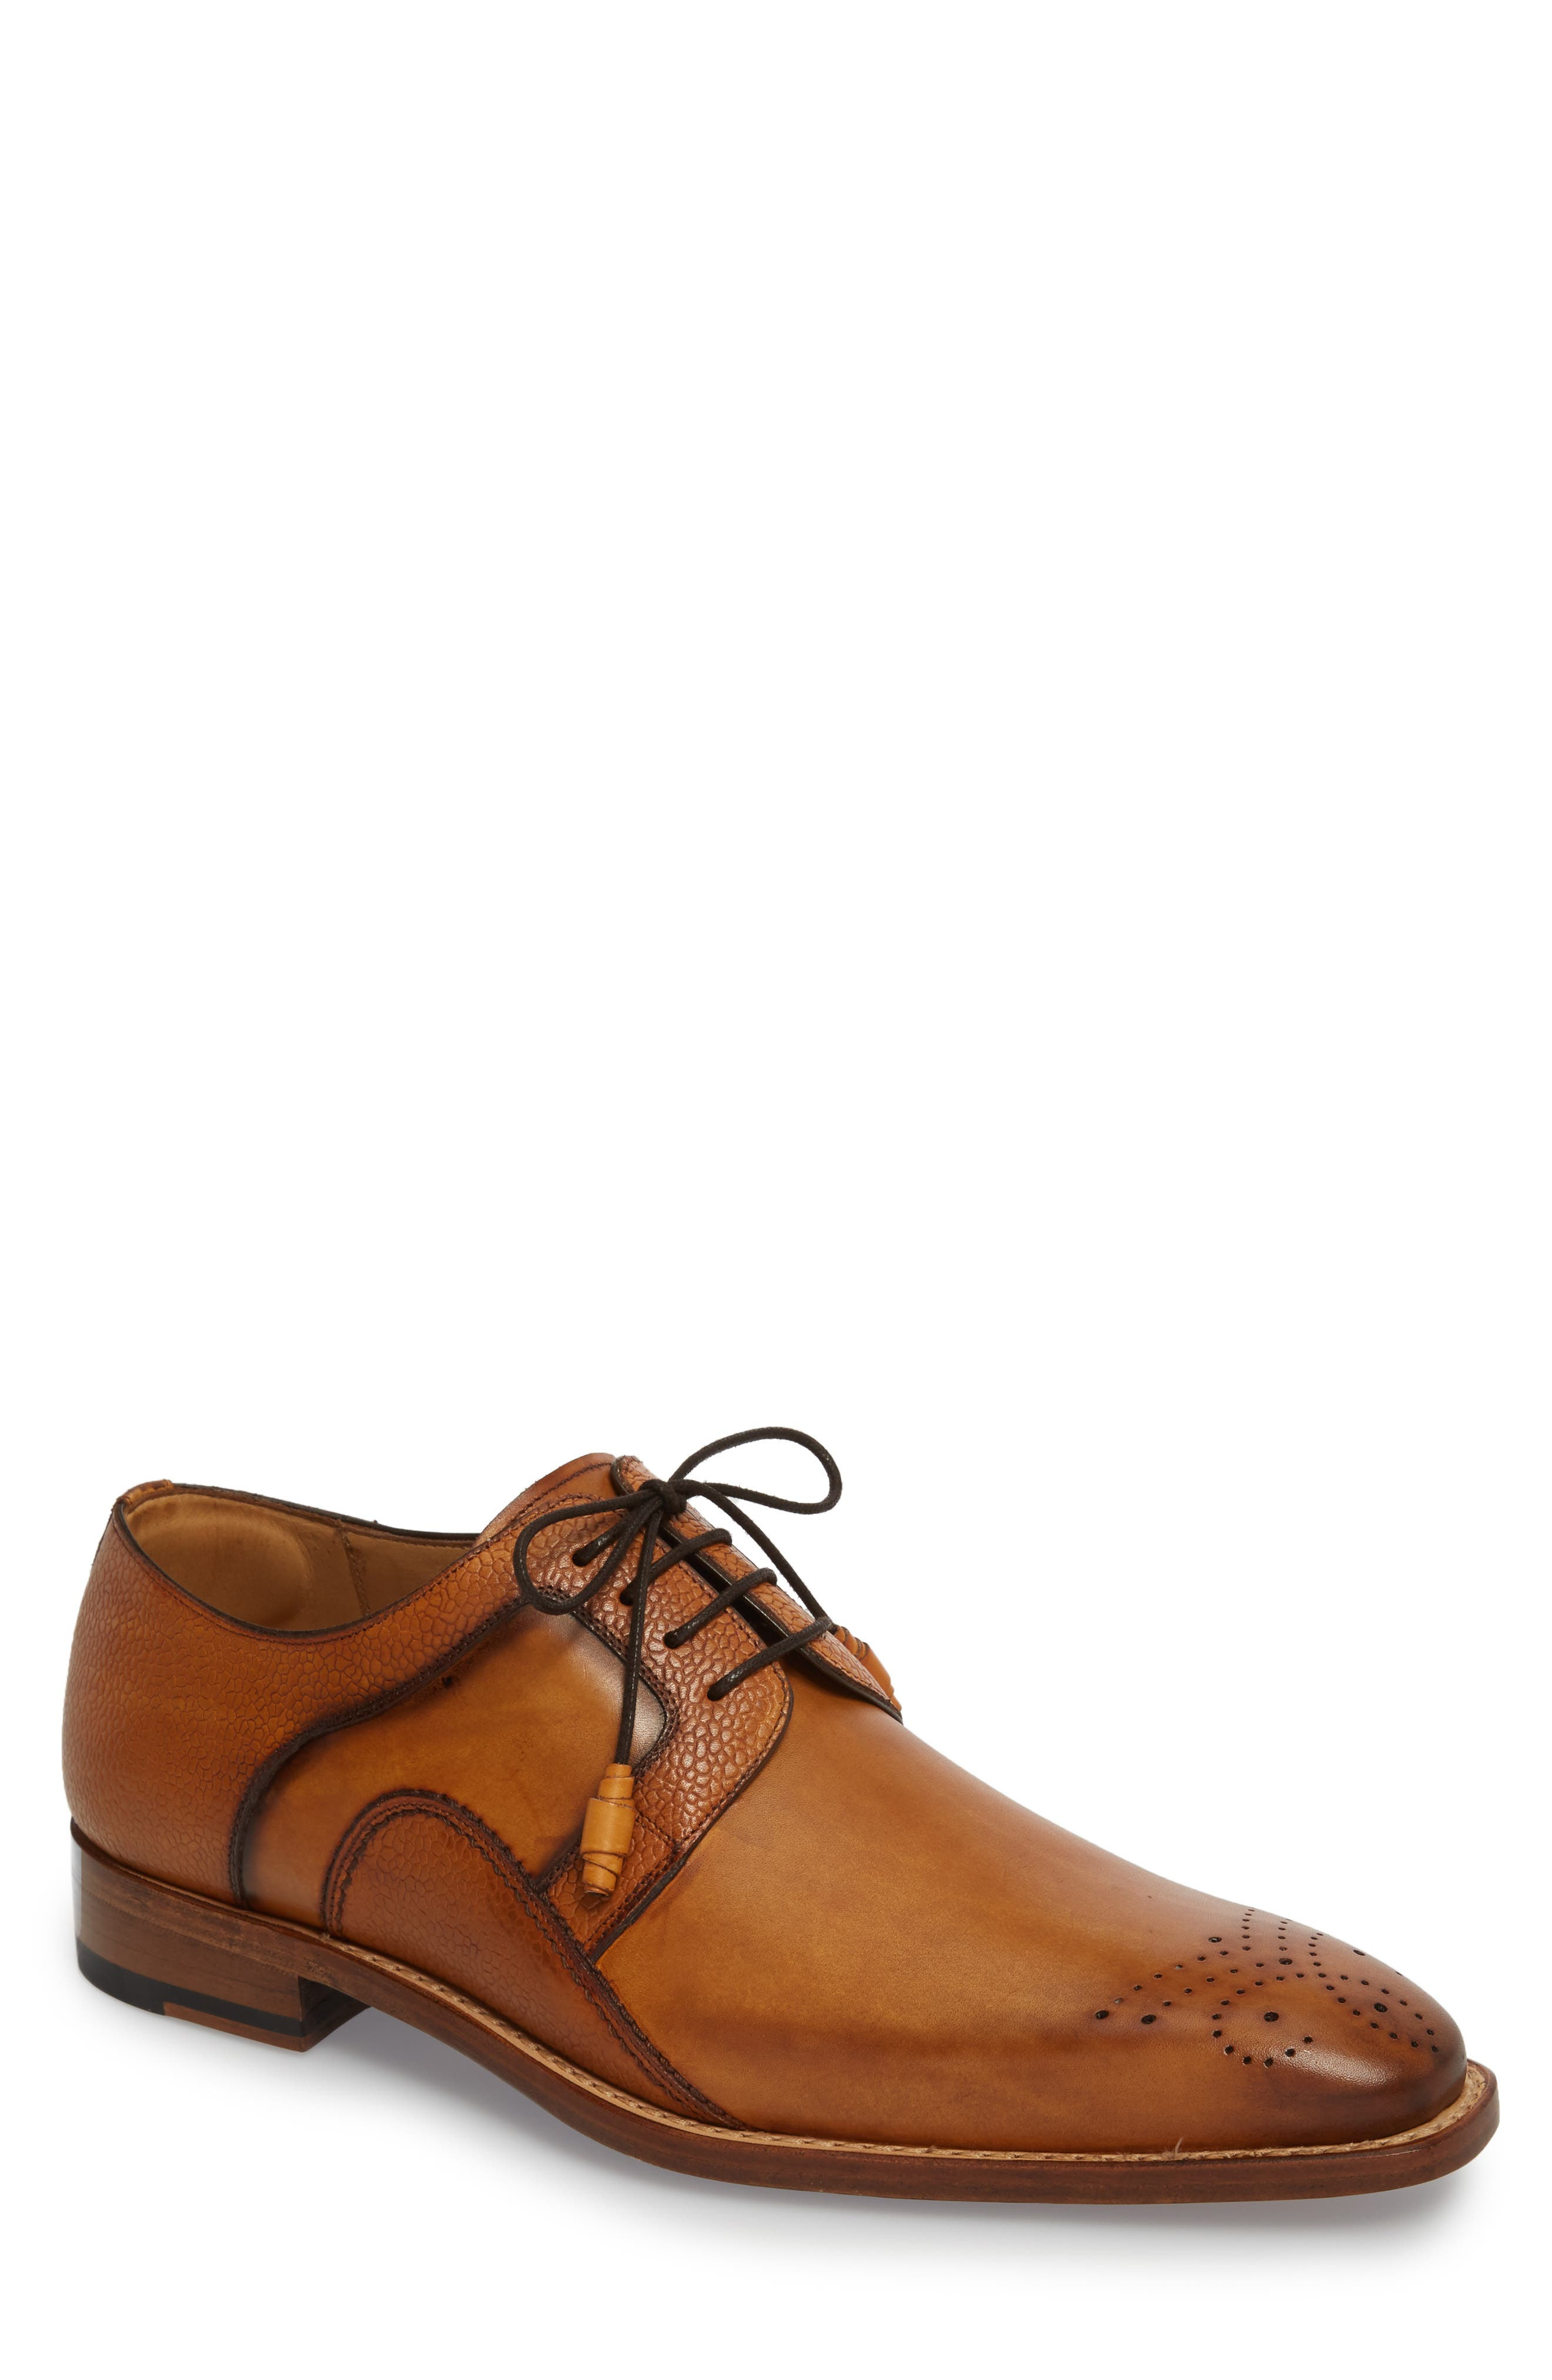 Saturno Medallion Toe Derby,                             Main thumbnail 1, color,                             TAN LEATHER